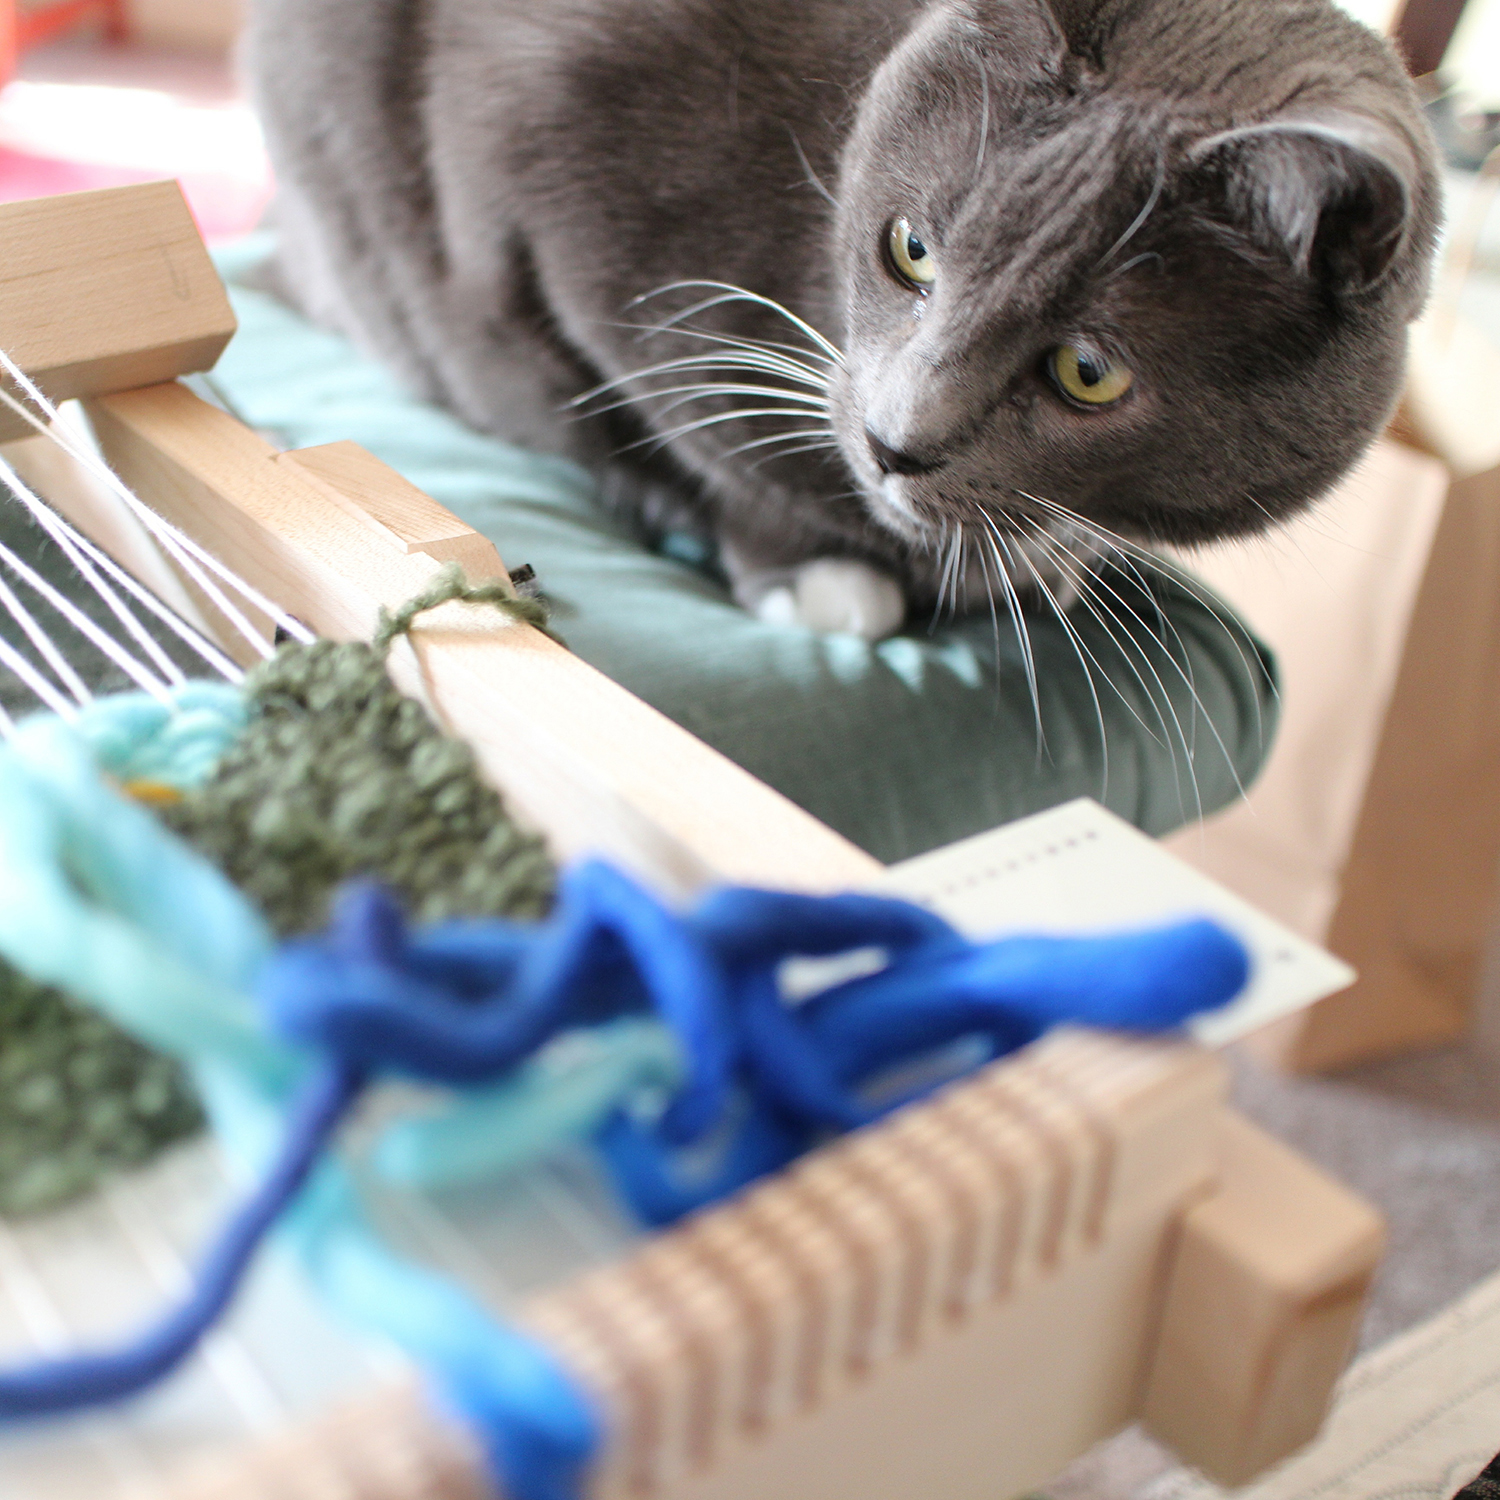 My cat helping with the weaving process.